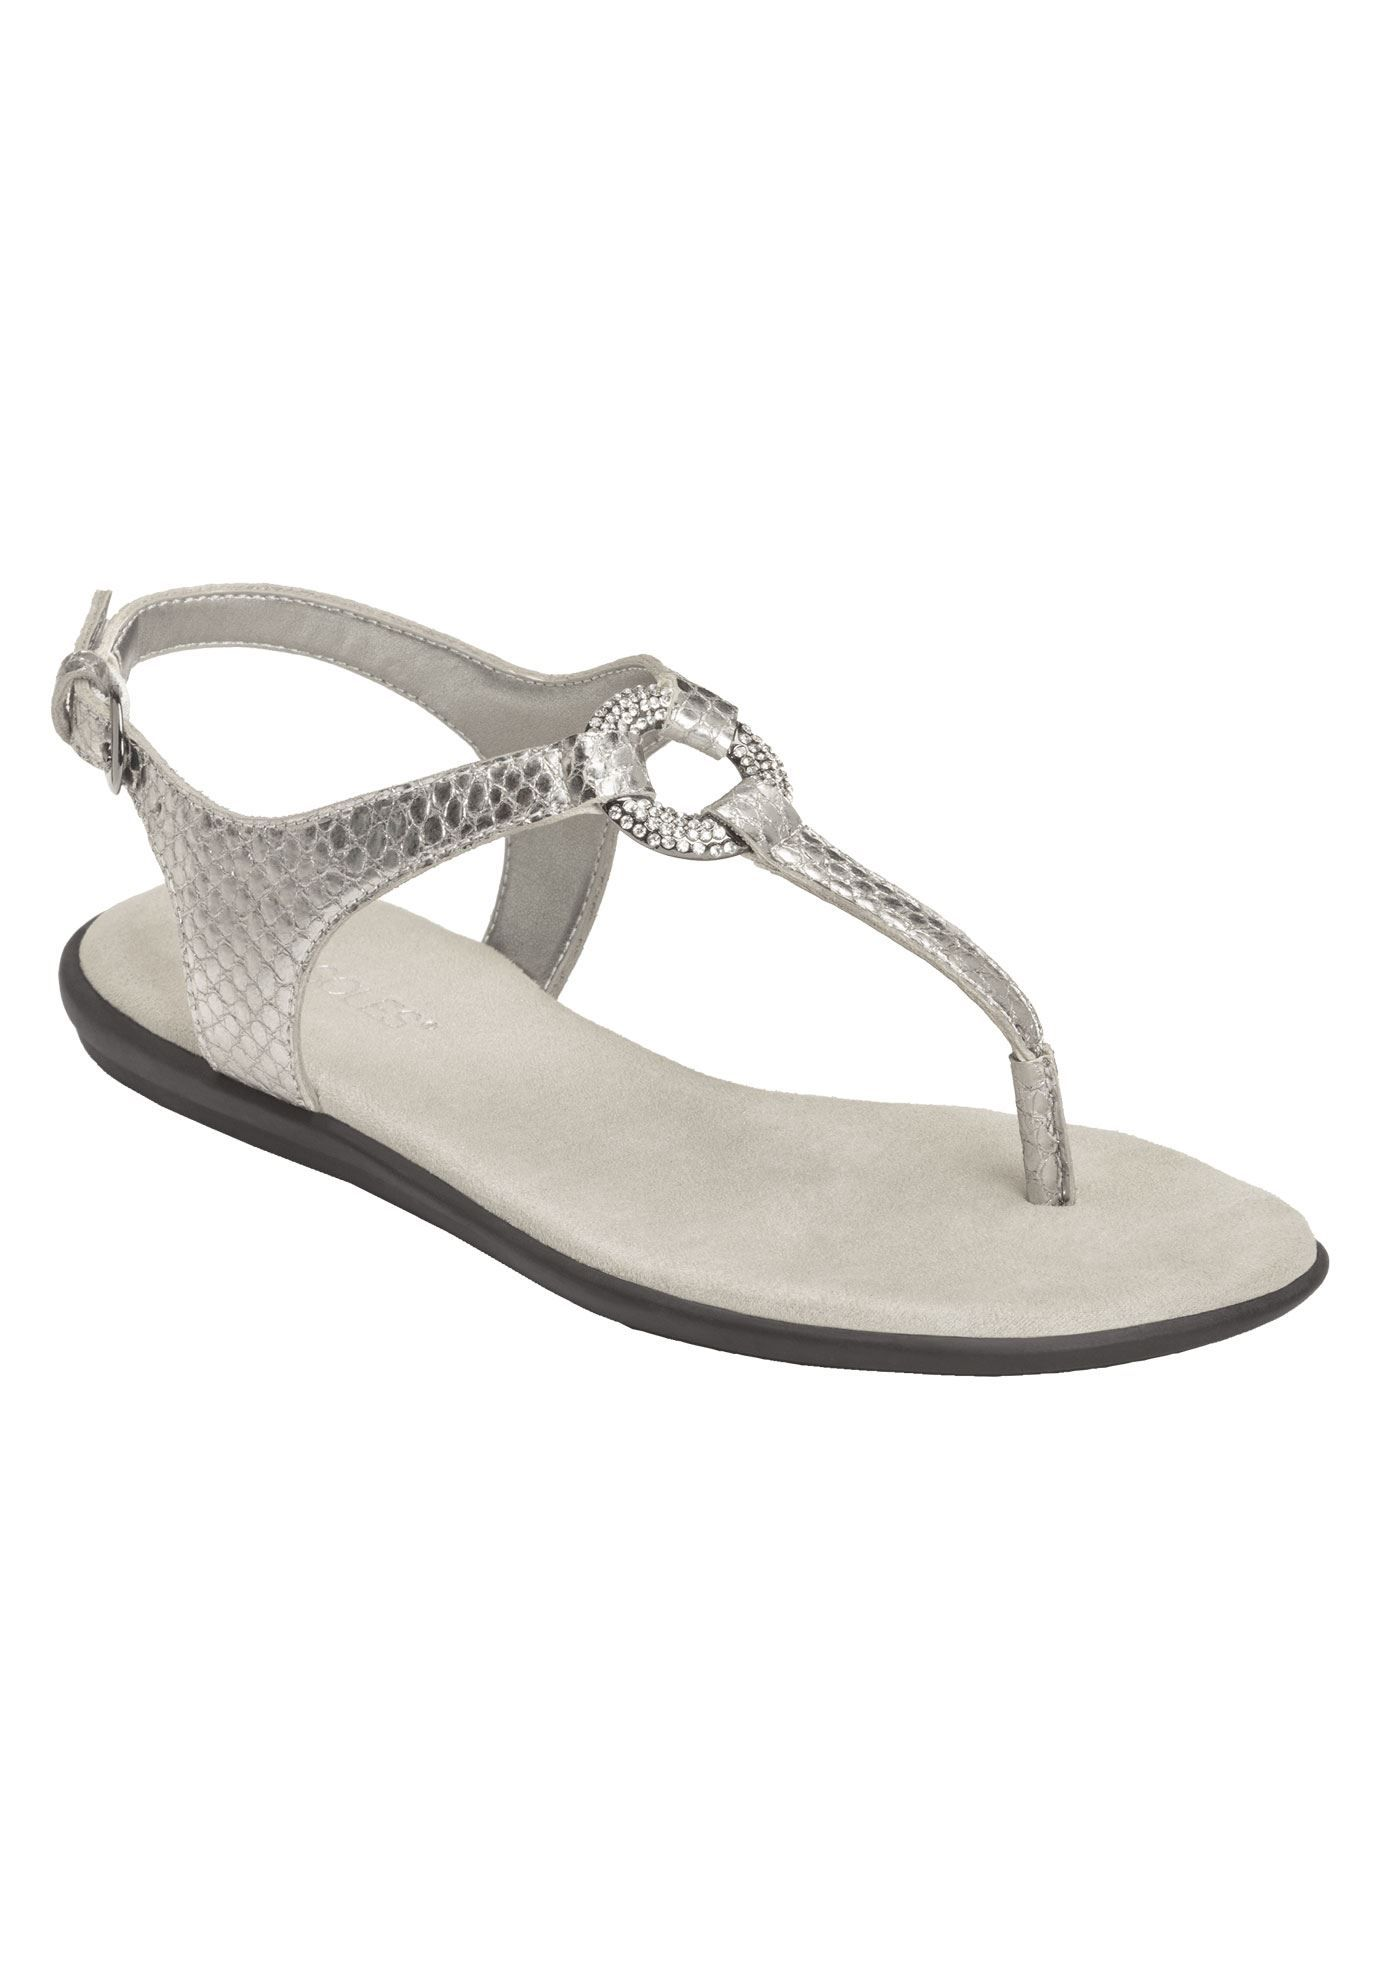 Chlass Ring Sandals by Aerosoles Wide Width Women's